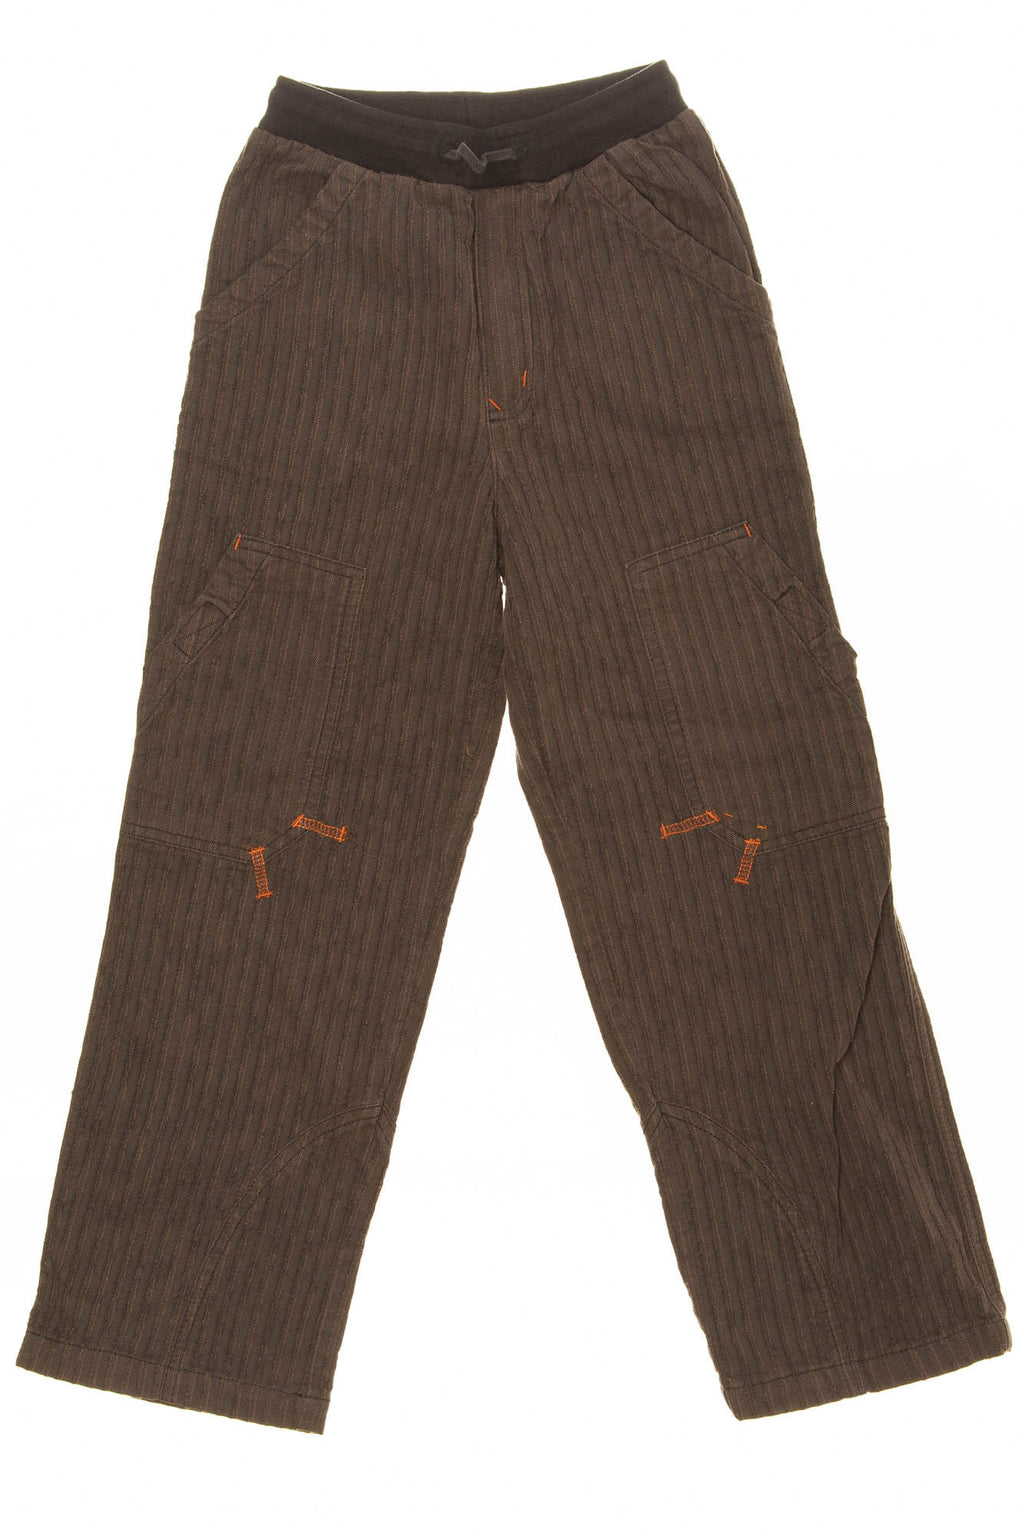 Catimini - Brown Striped Pants with Tie Waist - 8A